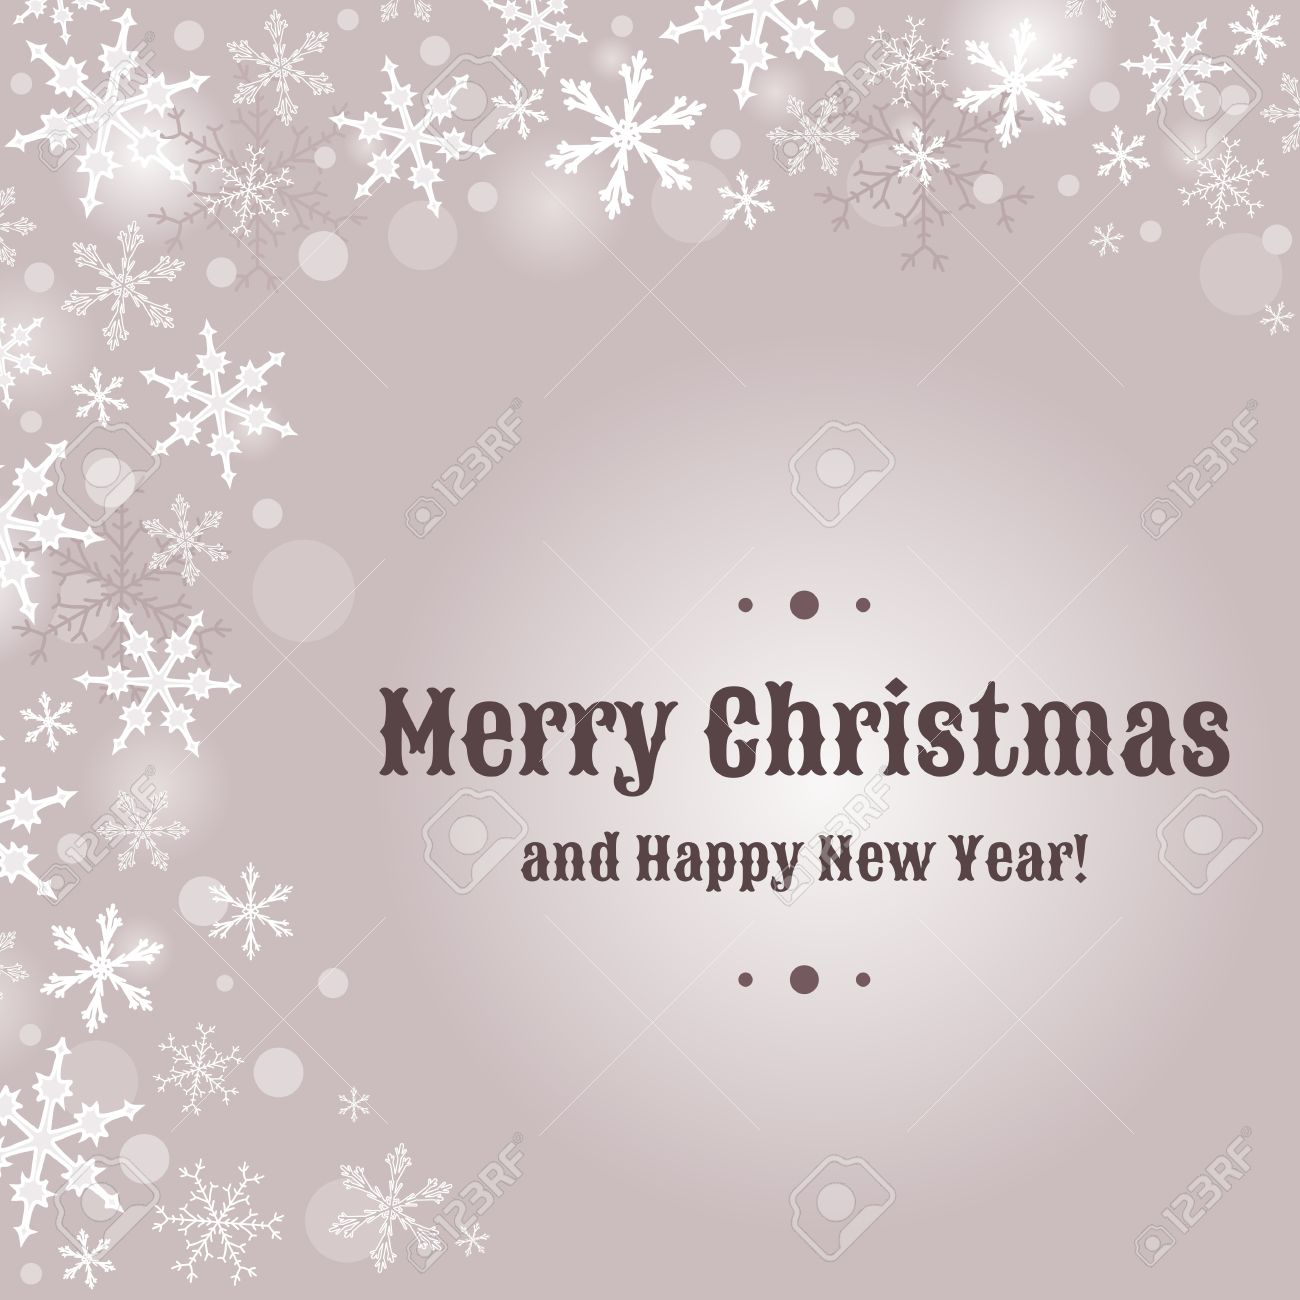 Merry Christmas Card Design With Snow Flakes Sample Text Copyspace